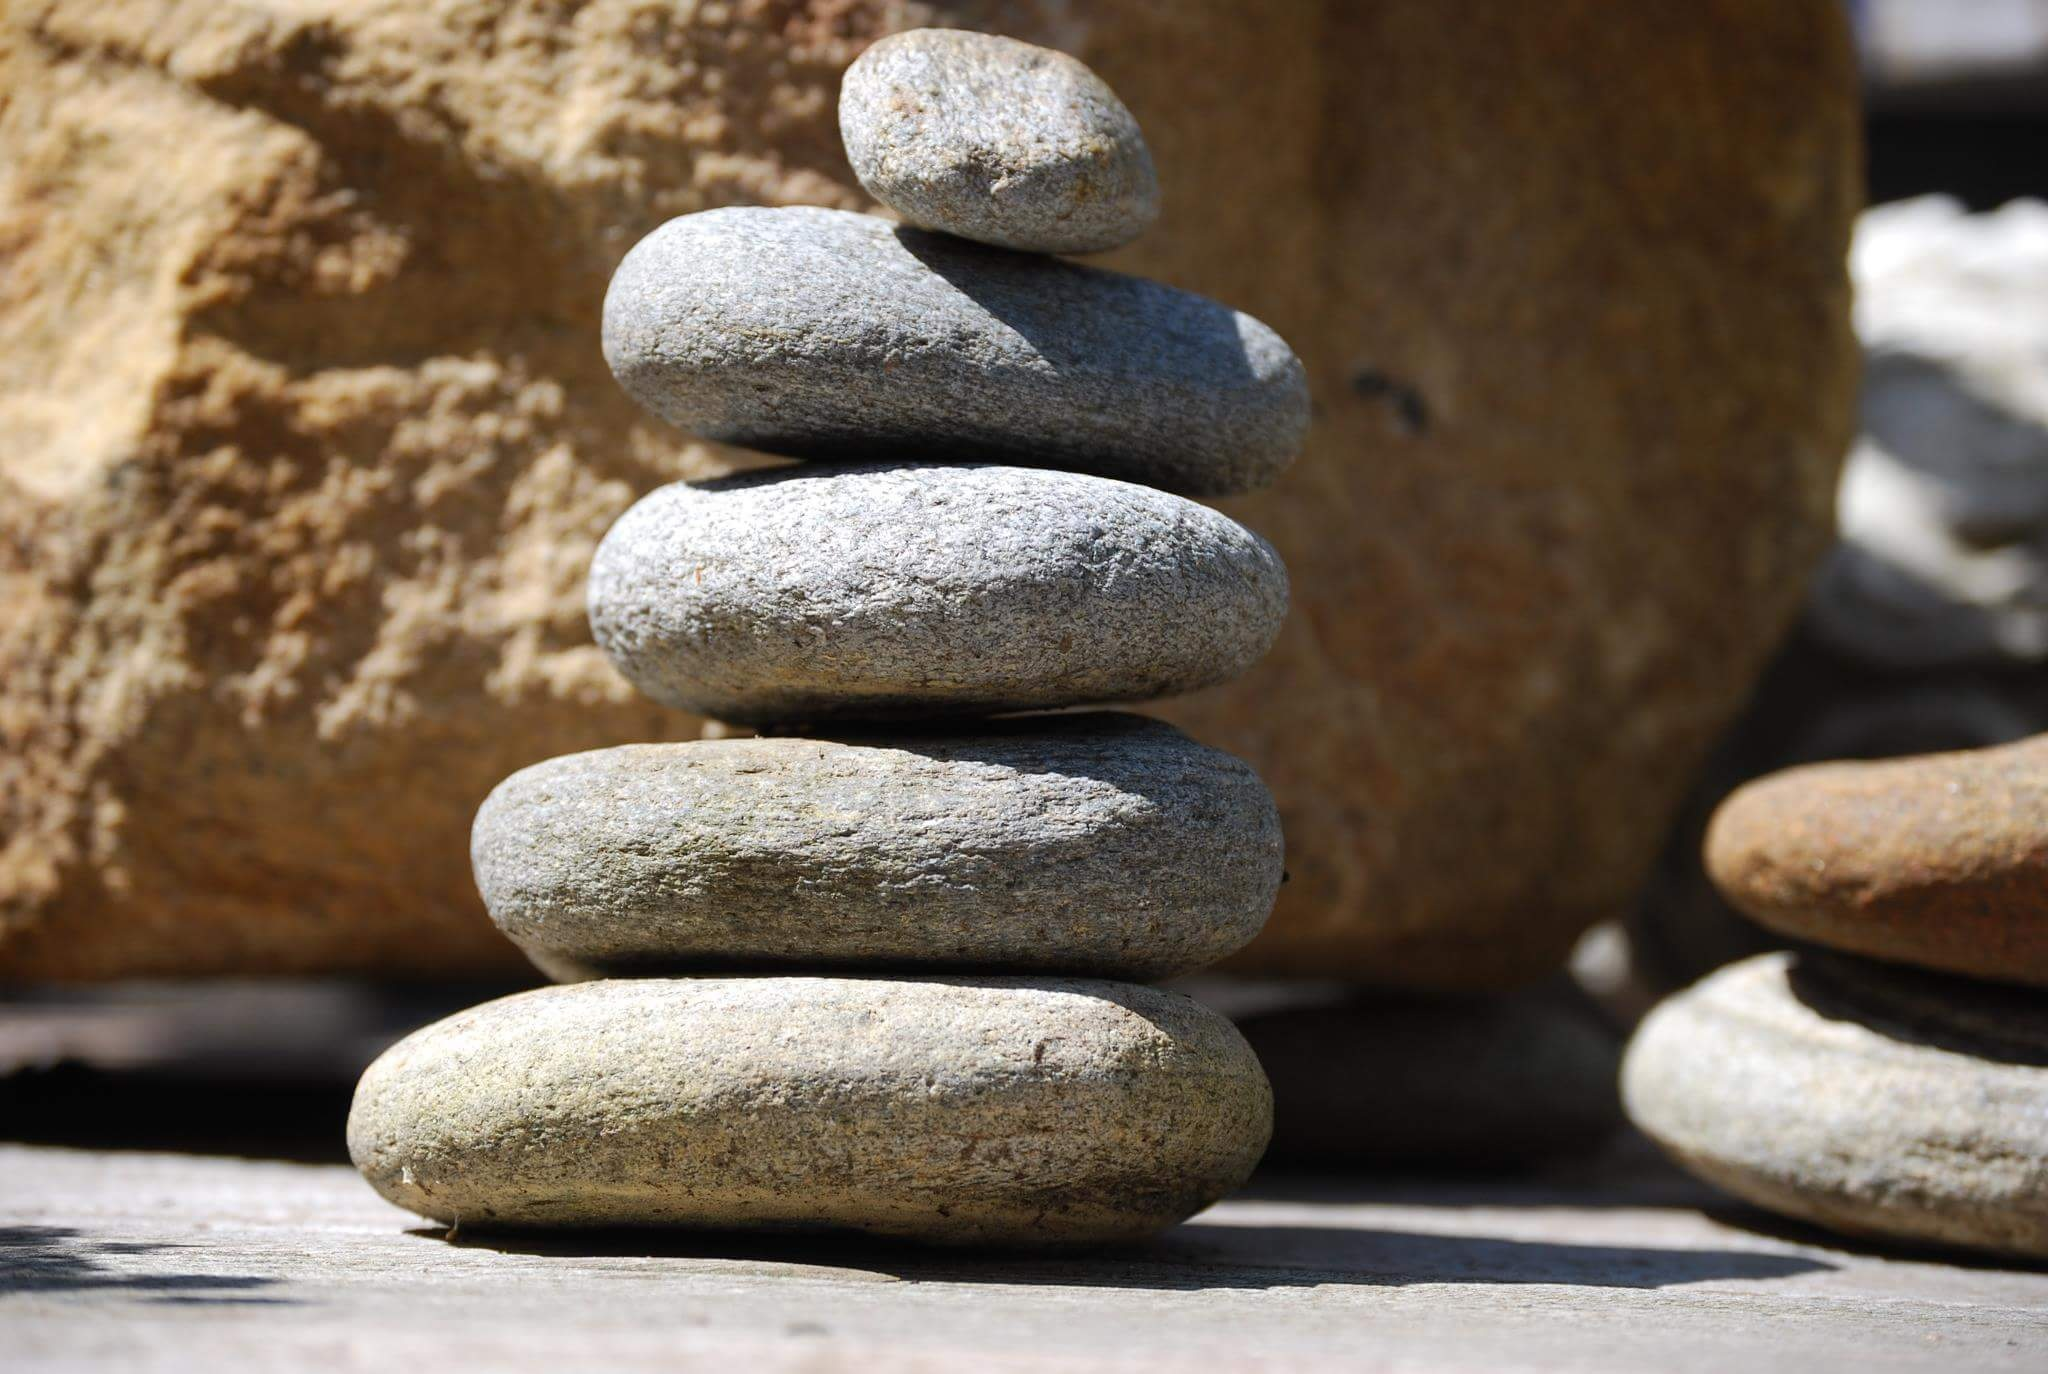 rock-wood-balance-pebble-soil-material-stones-boulder-cairn-830220